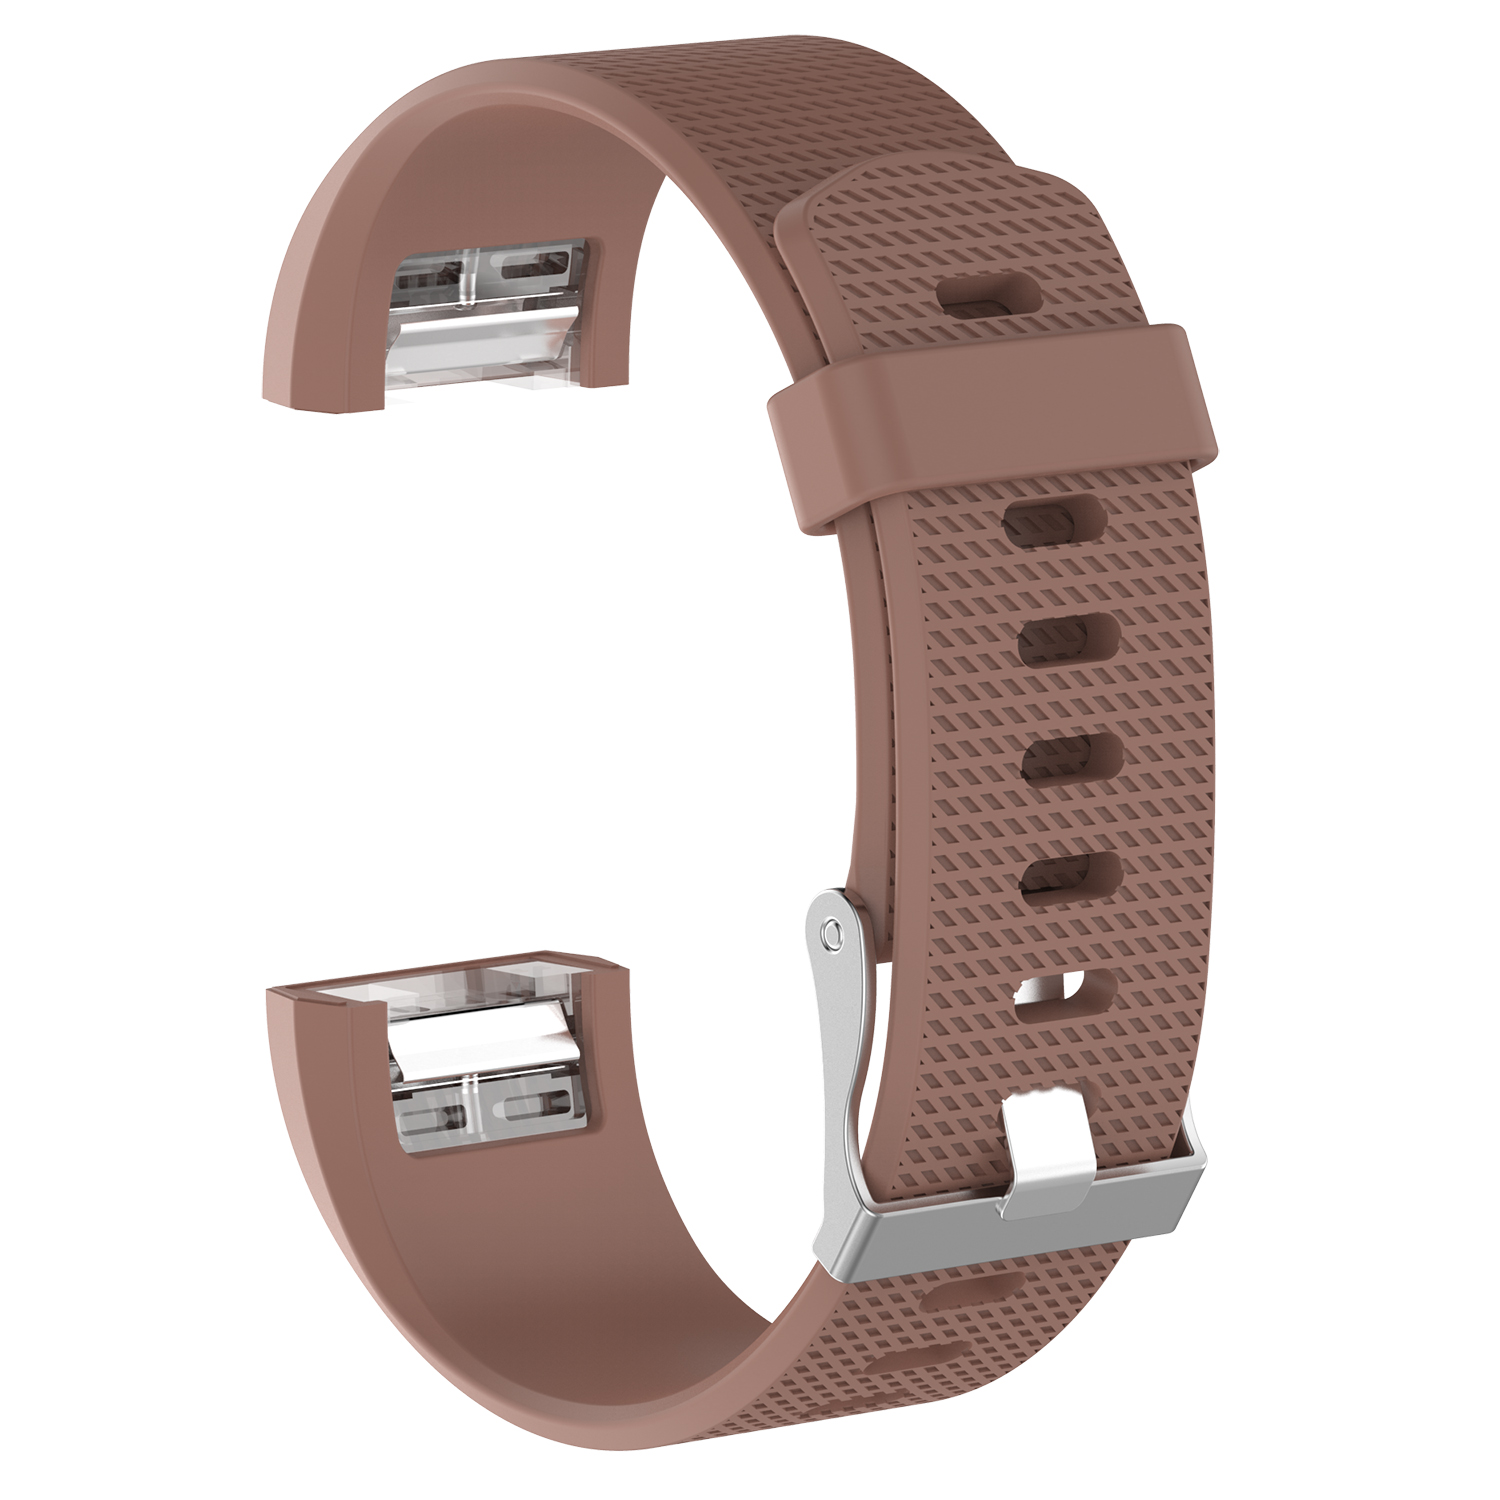 Replacement-Silicone-Wristband-Watch-Strap-Bands-Bracelet-For-Fitbit-Charge-2 thumbnail 50